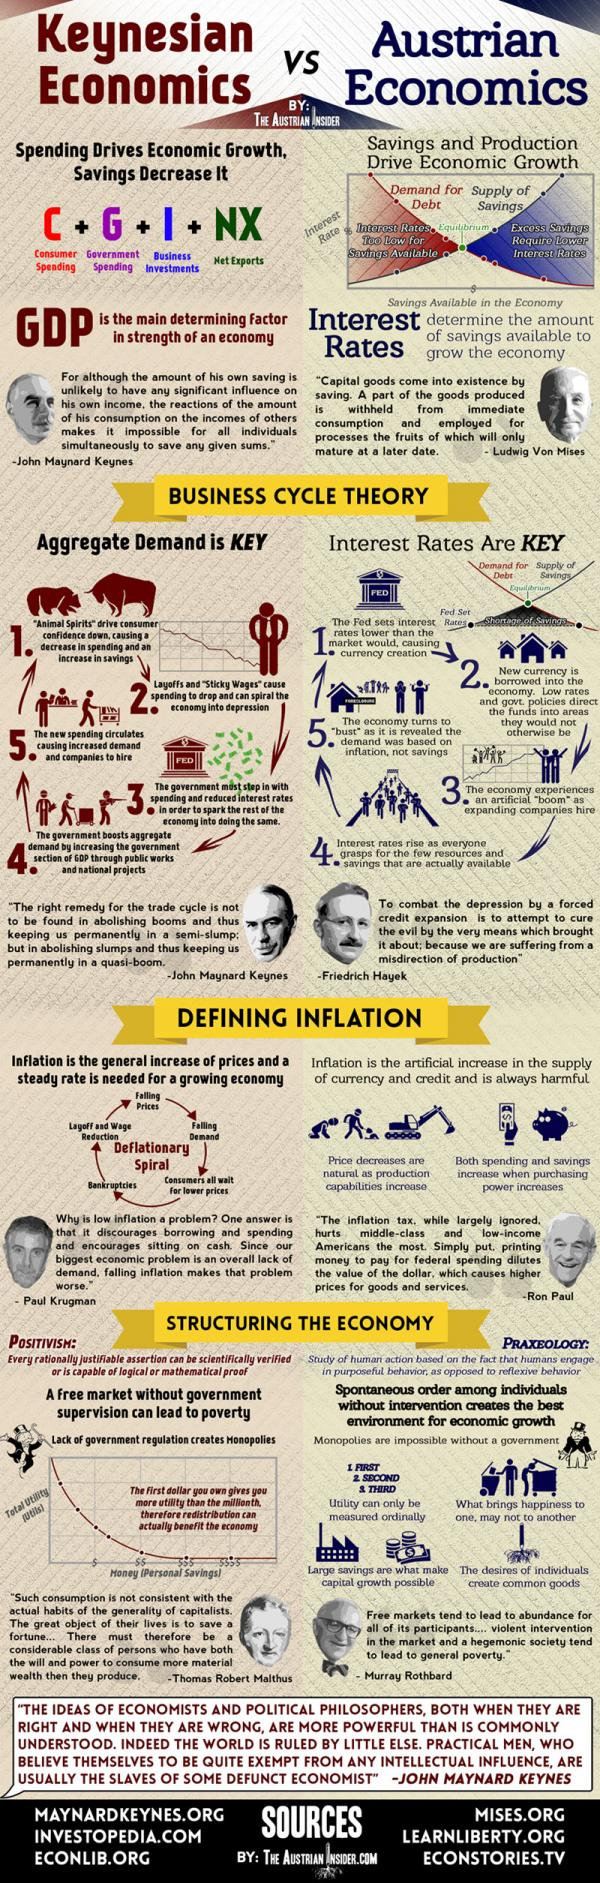 Keynesian vs. Austrian #economic theories. Wonderfull #infographic. (P.S. go Austria!) https://t.co/gFRCIYqOiC